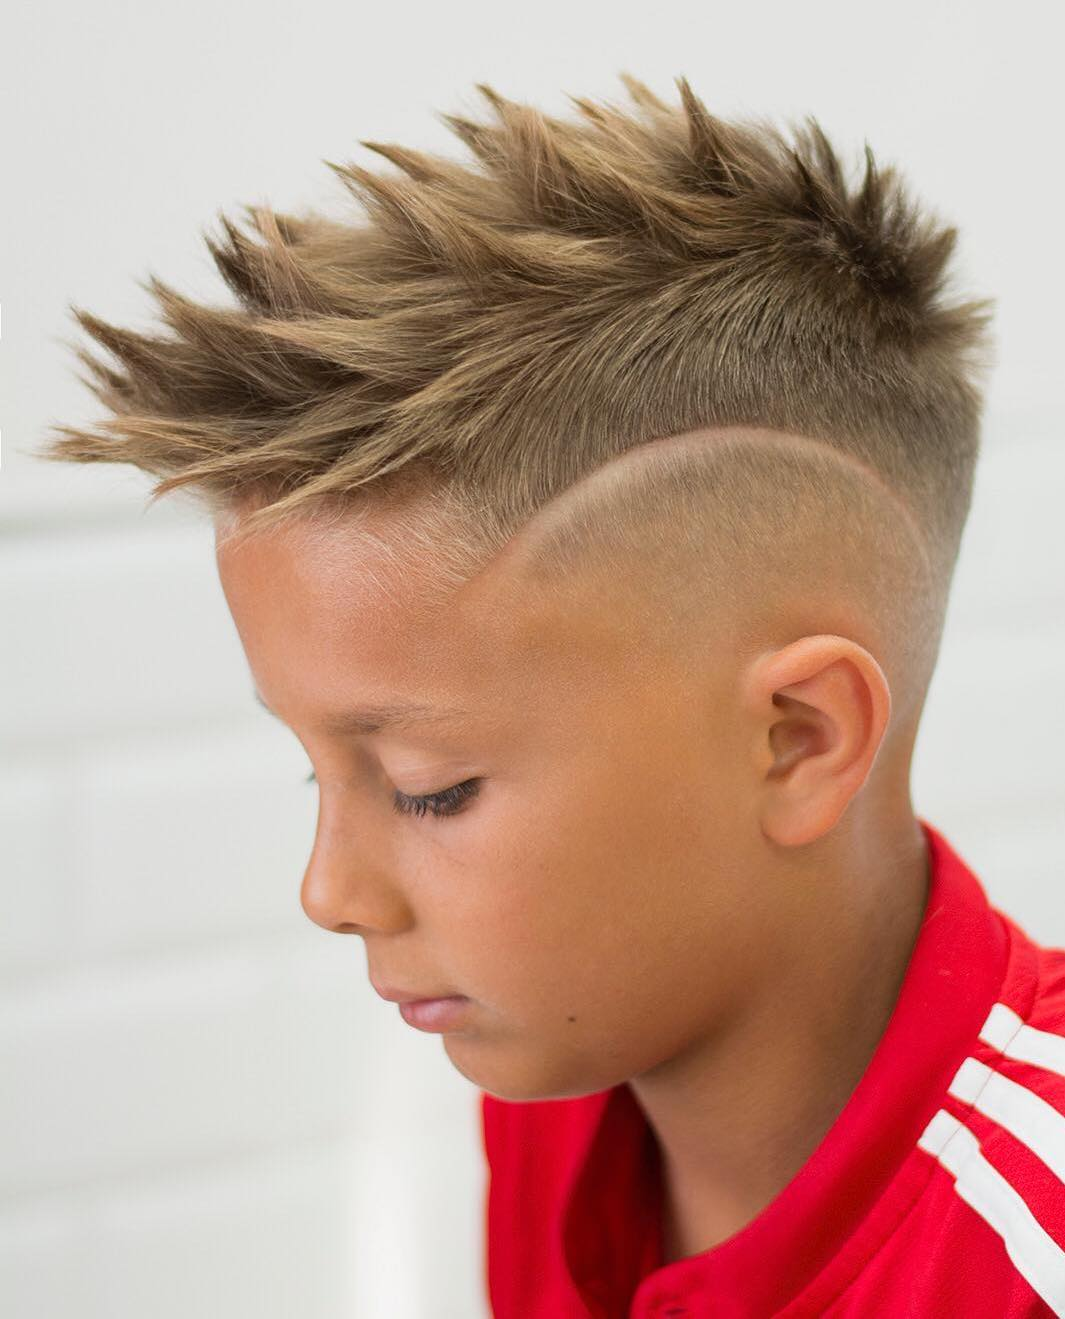 Spiky Disconnected Blonde Hair